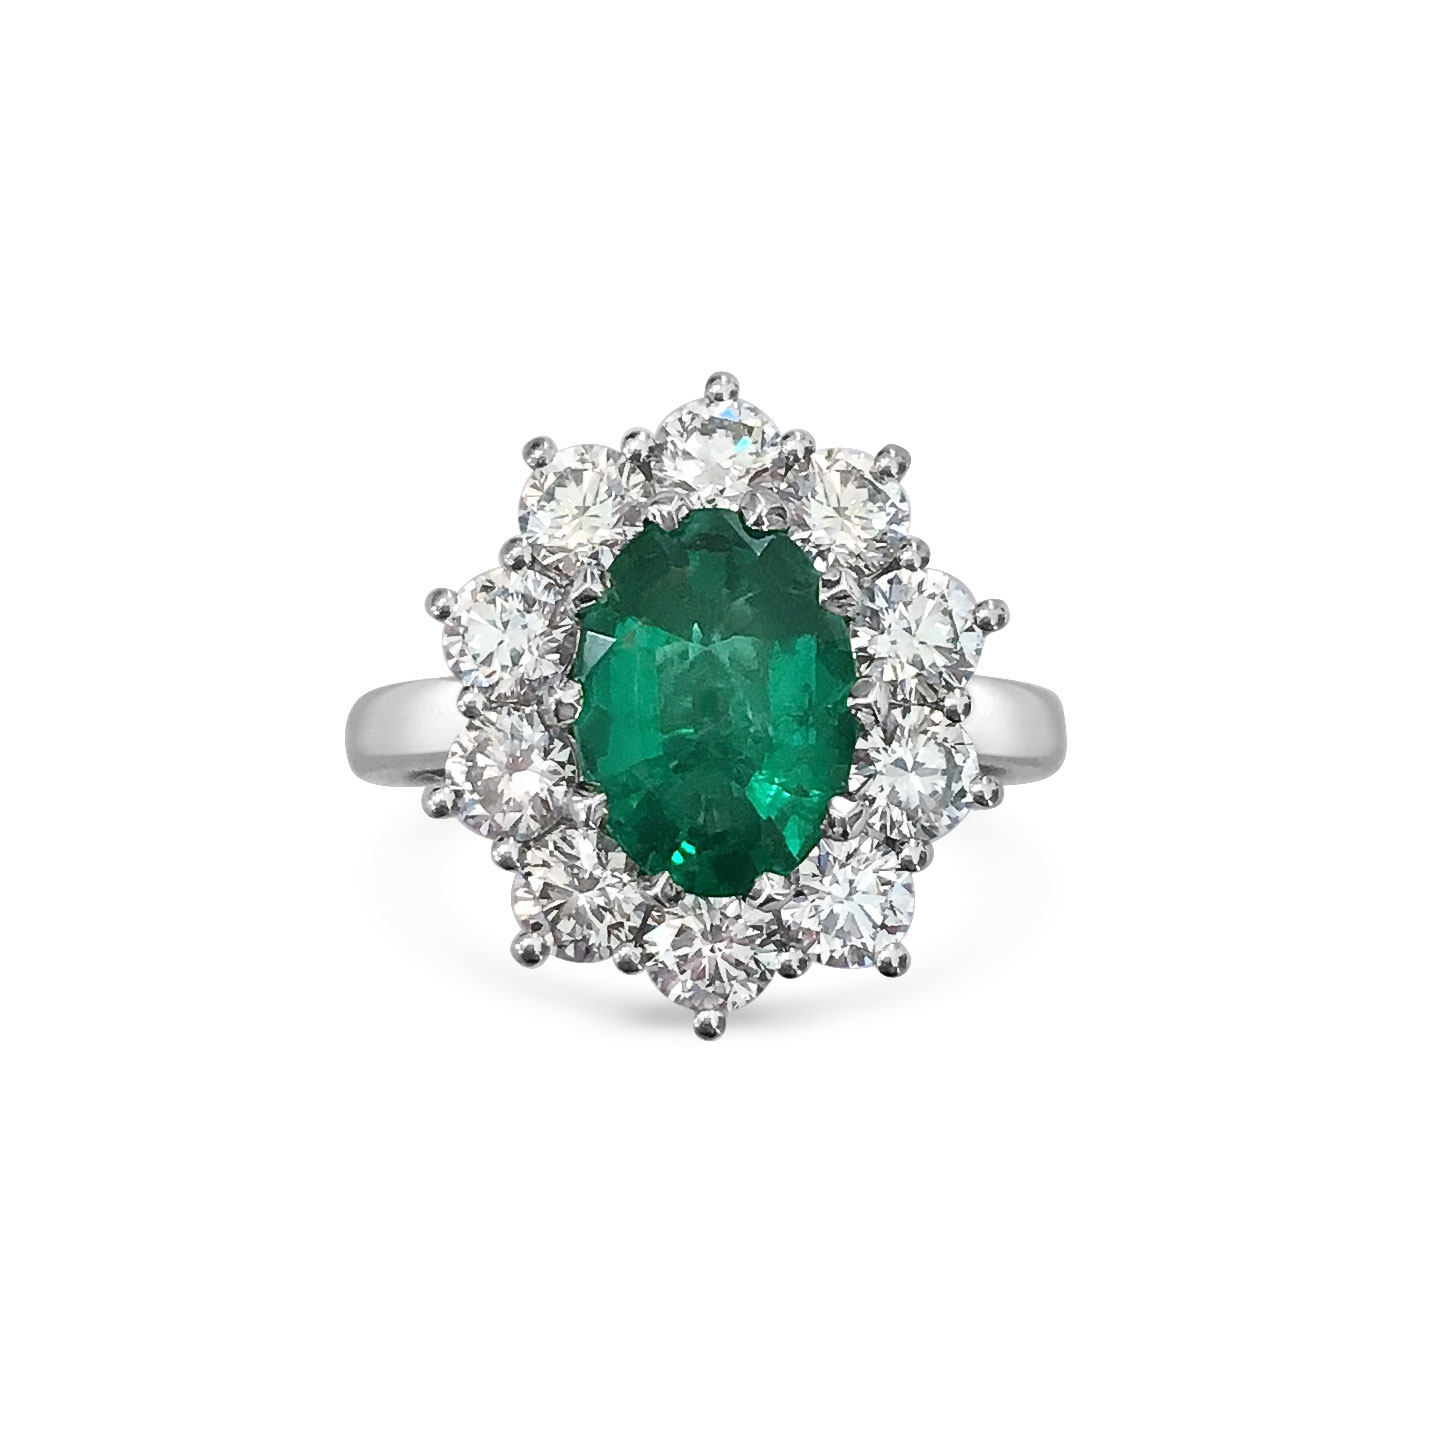 Oval emerald with diamond halo engagement ring, mounted in platinum.